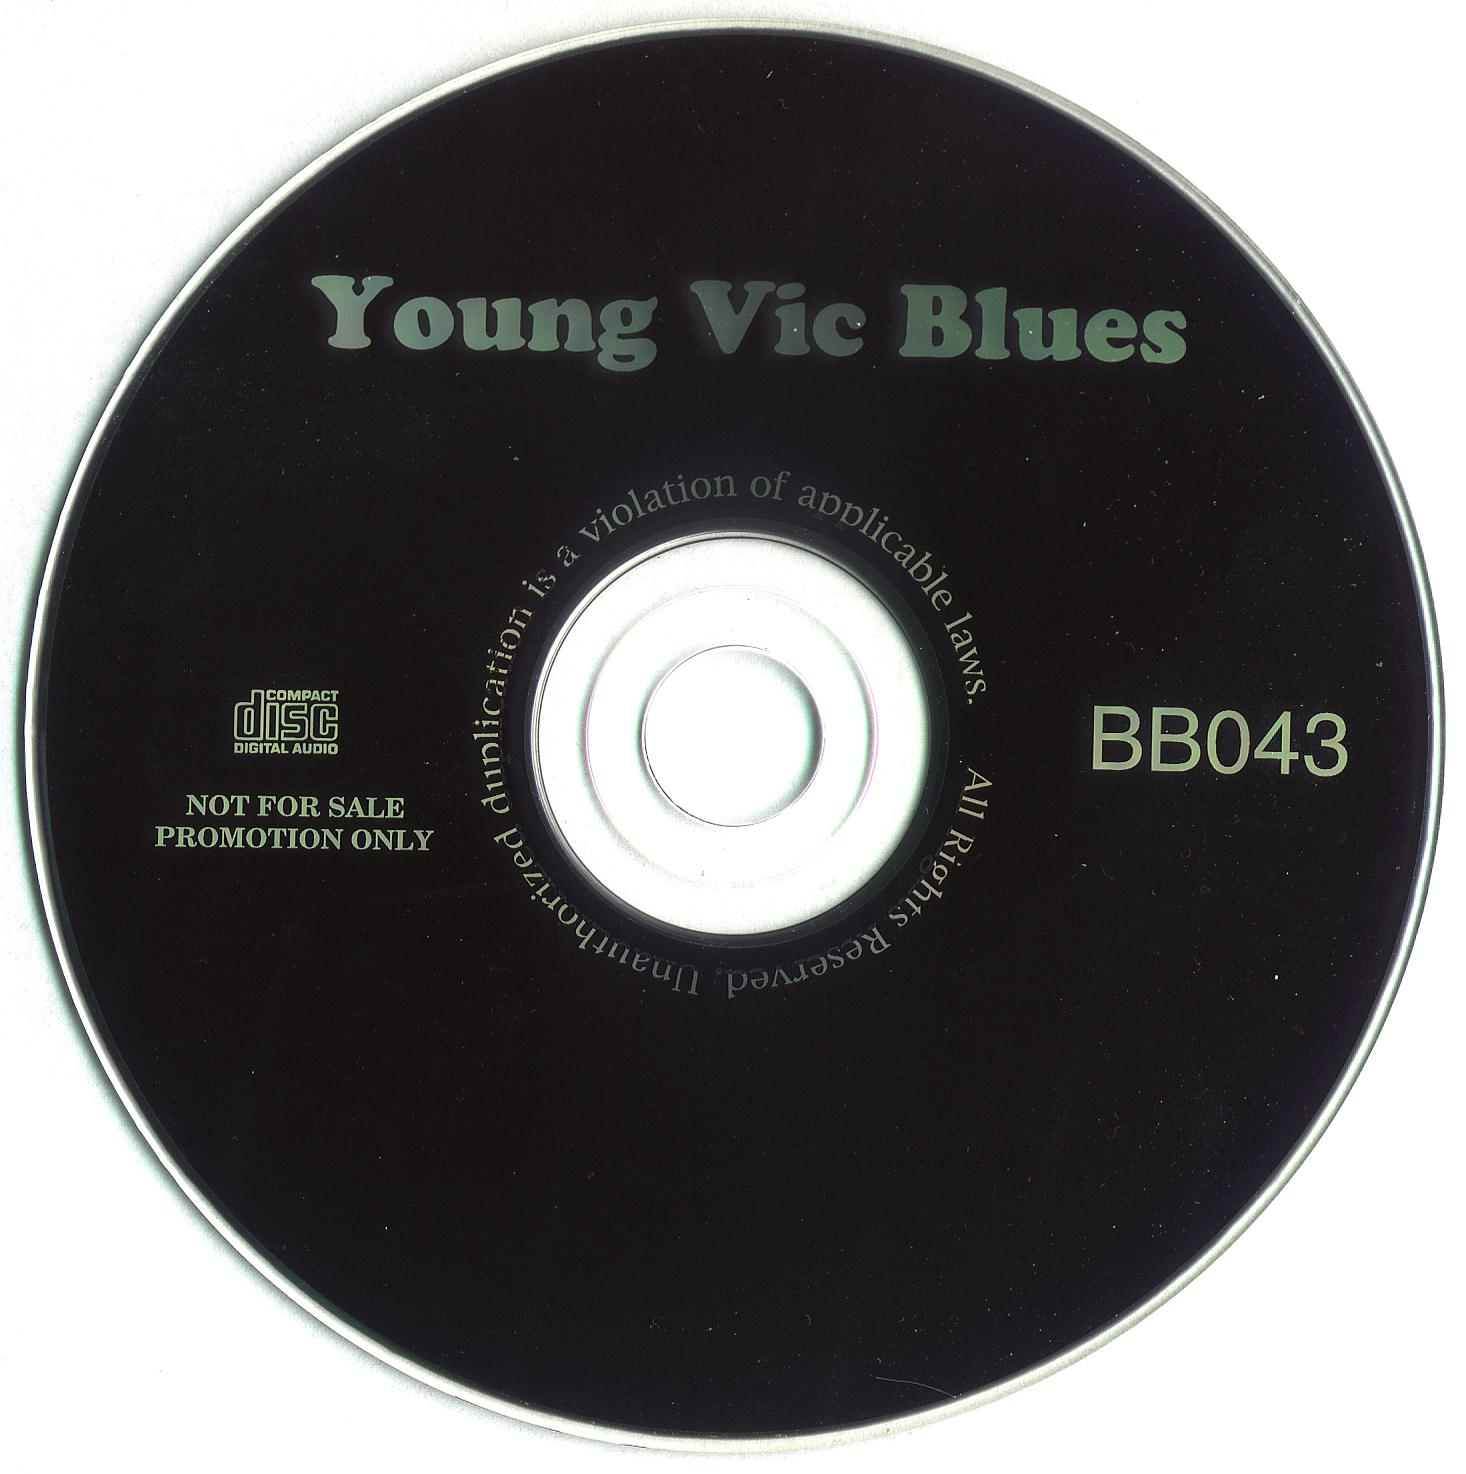 1971-04-26-YOUNG_VIC_BLUES-disc